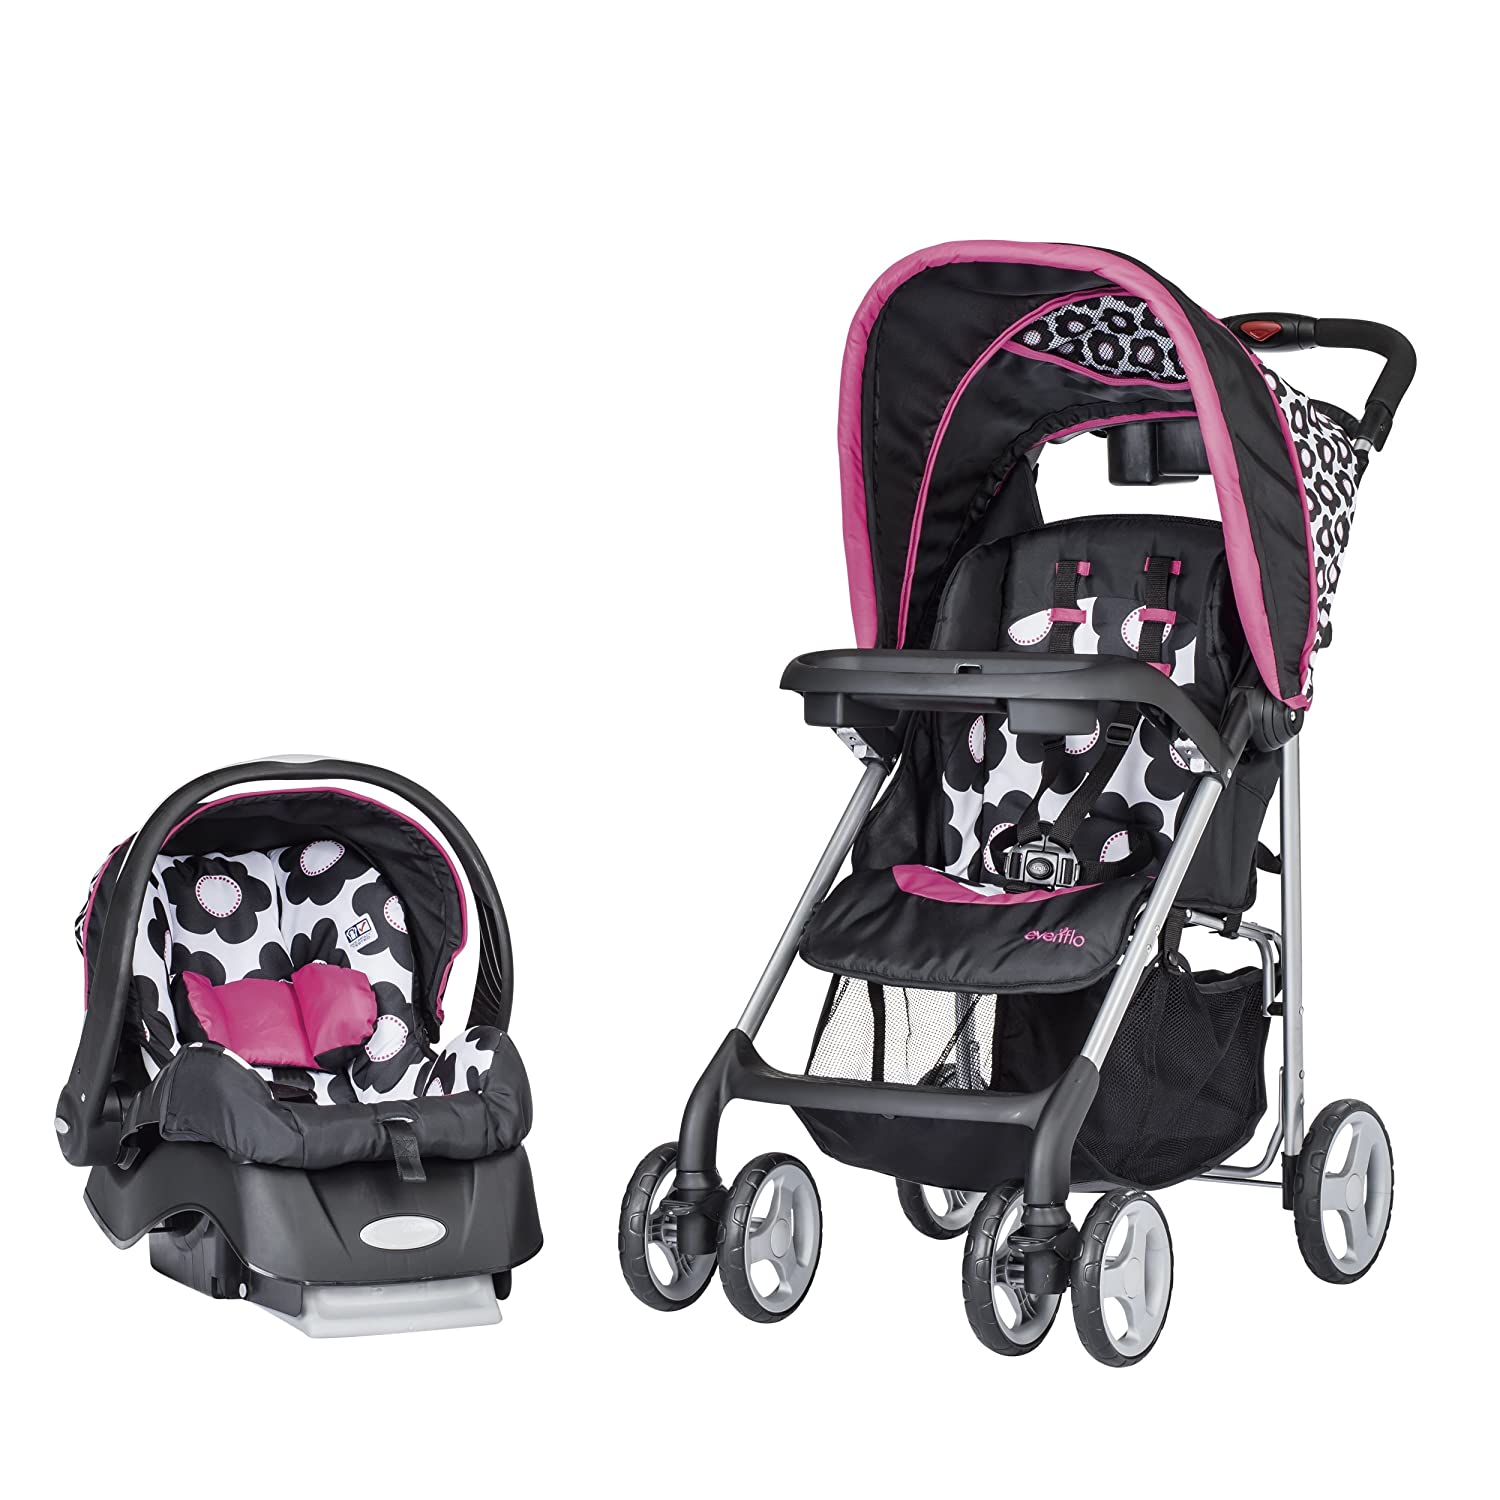 Top 7 Best Infant Travel Systems Parents Love in 2020 7